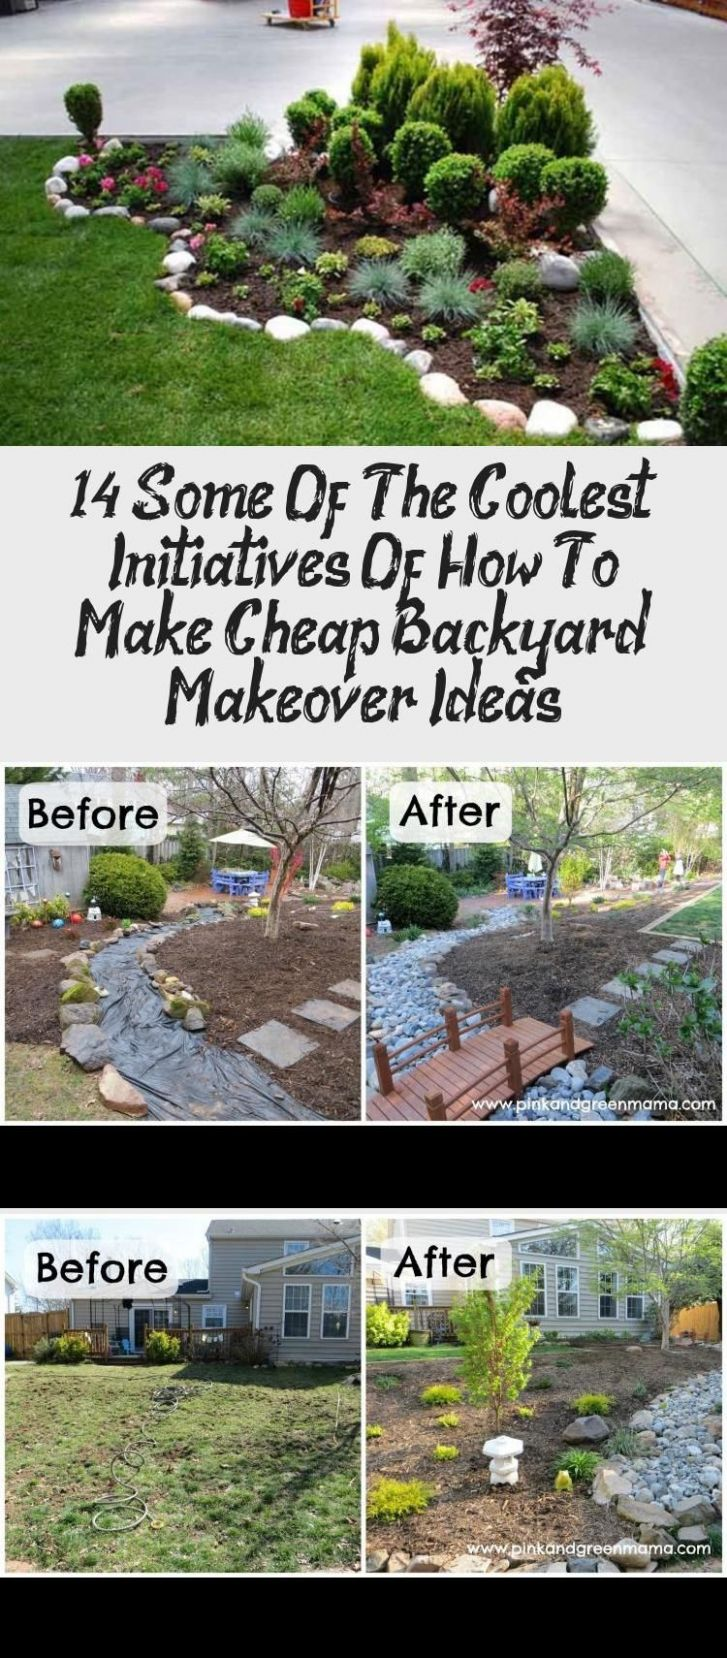 12 Some Of The Coolest Initiatives Of How To Make Cheap Backyard ..